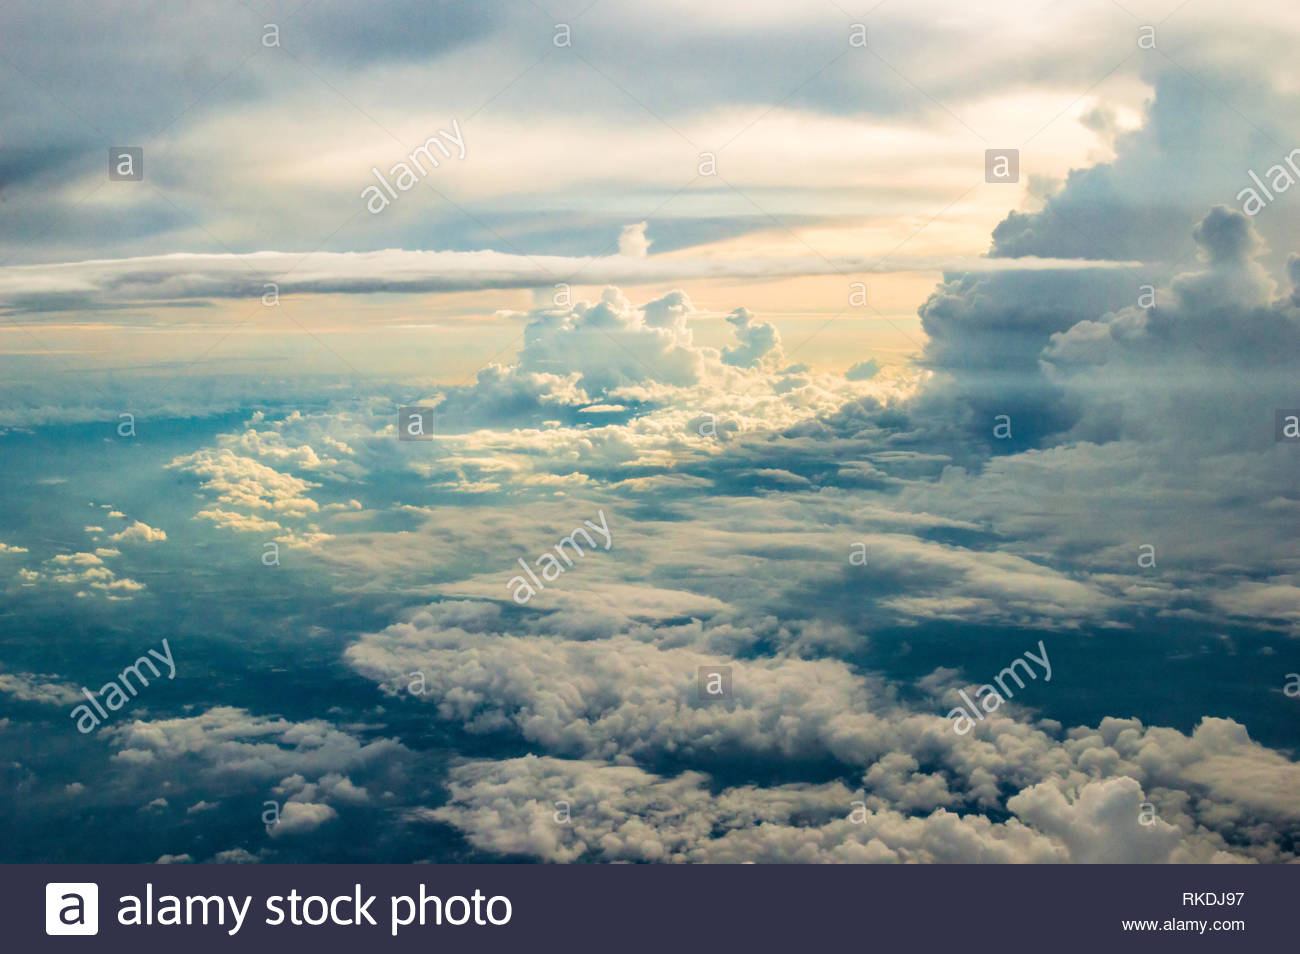 Dramatic cumulonimbus cloudscape after a rainy day, as photographed from a plane. Beautiful sunset sky. - Stock Image